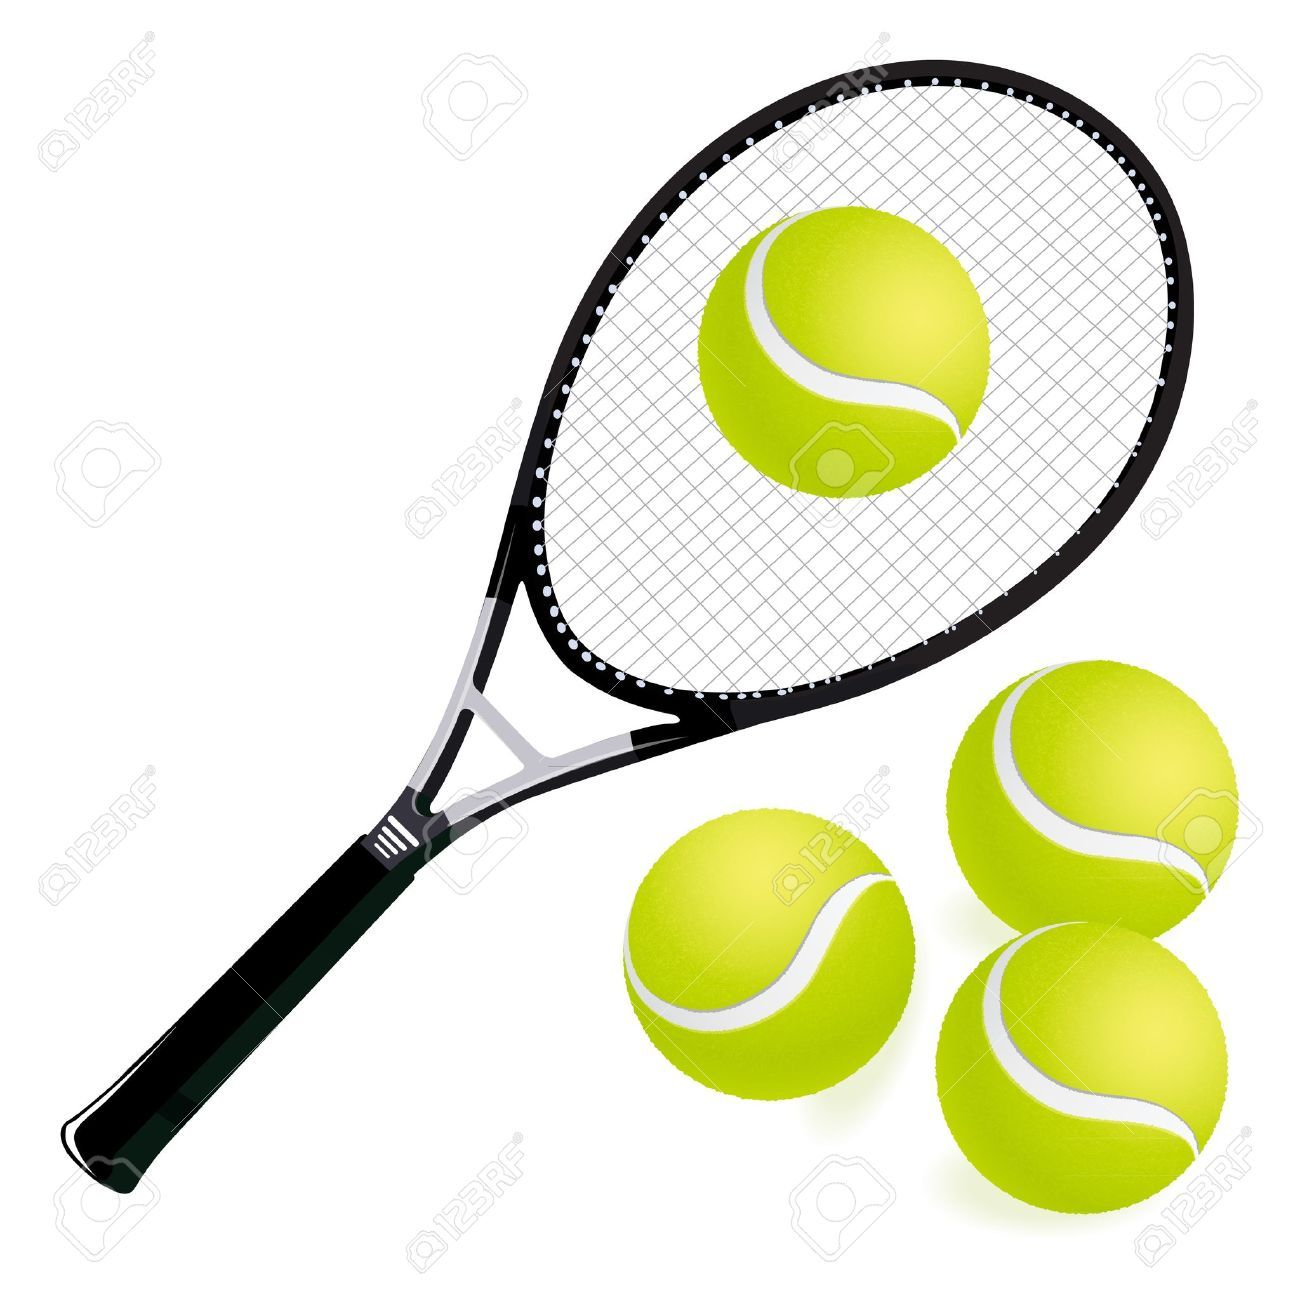 hight resolution of tennis racket stock illustrations cliparts and royalty free 21 559 tennis racket stock